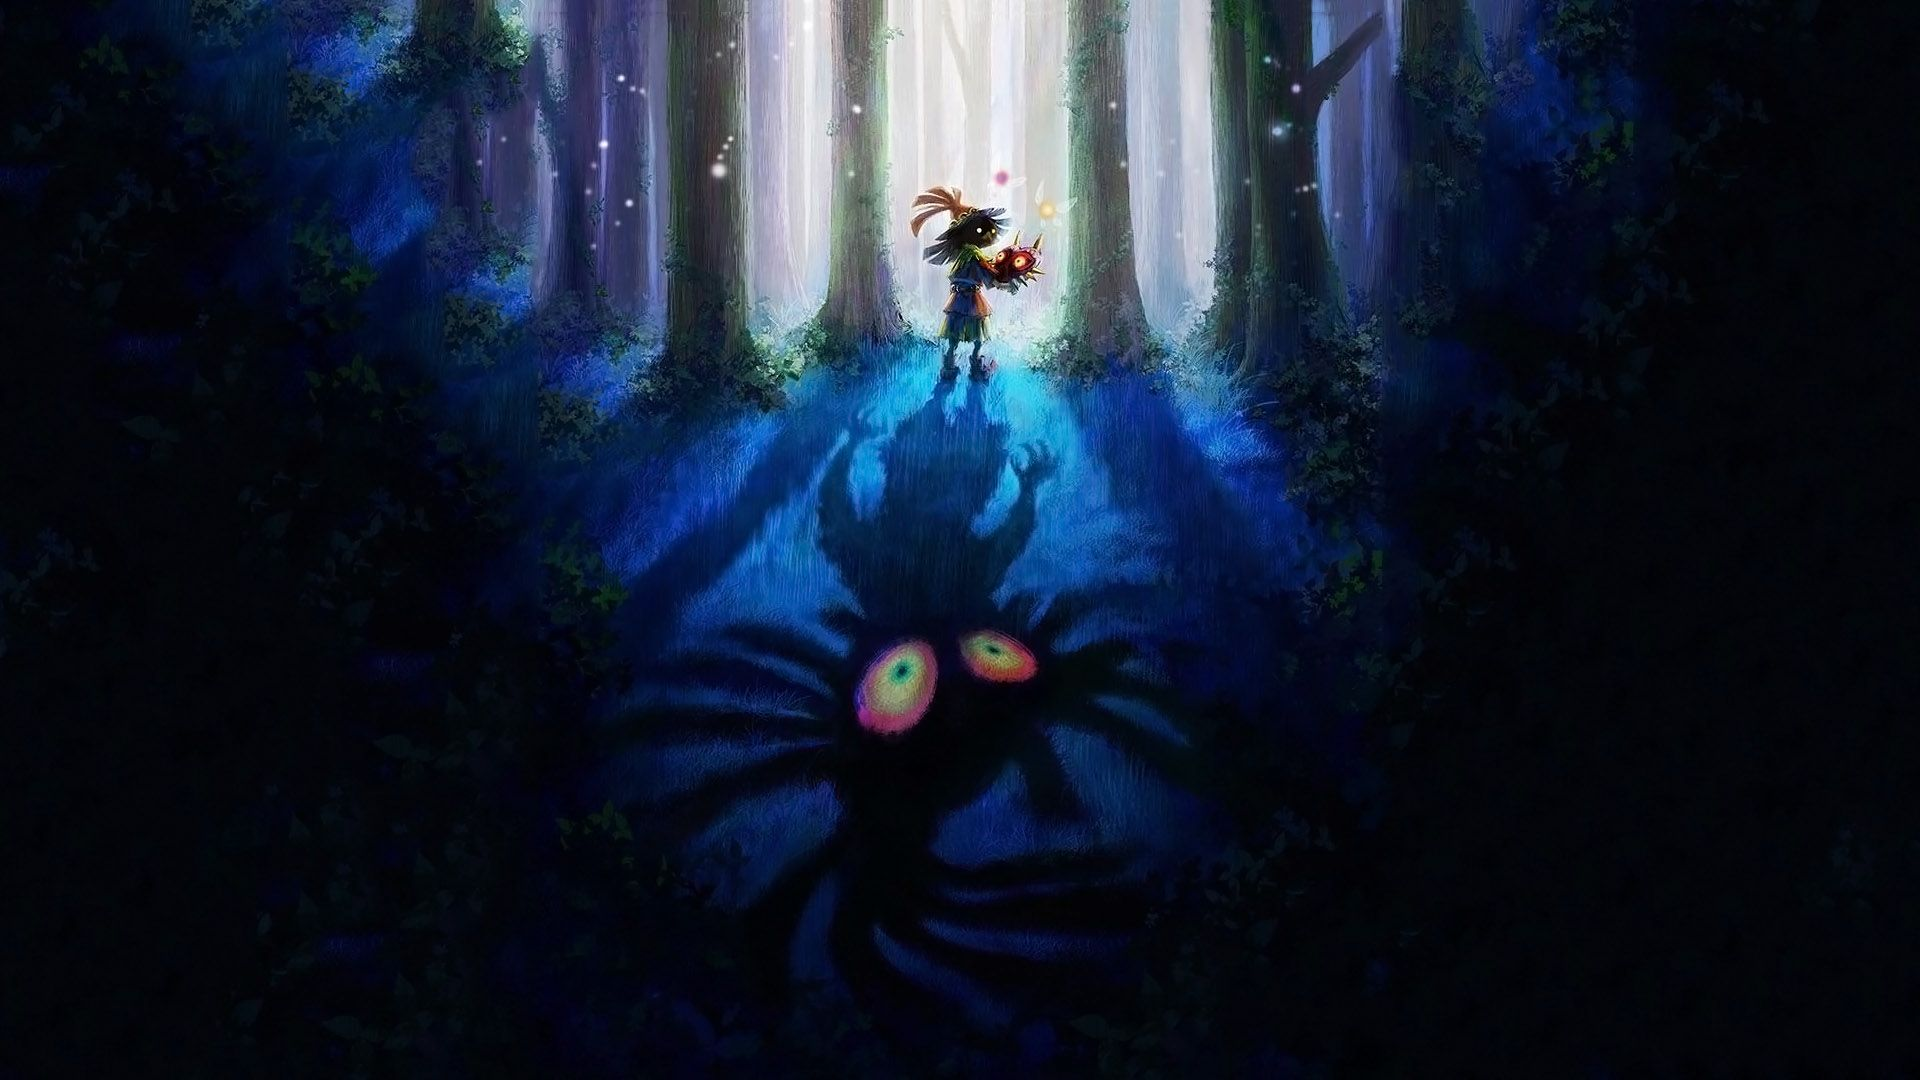 Skull Kid Wallpaper: Cool Majoras Mask Zelda Wallpaper Skull Kid